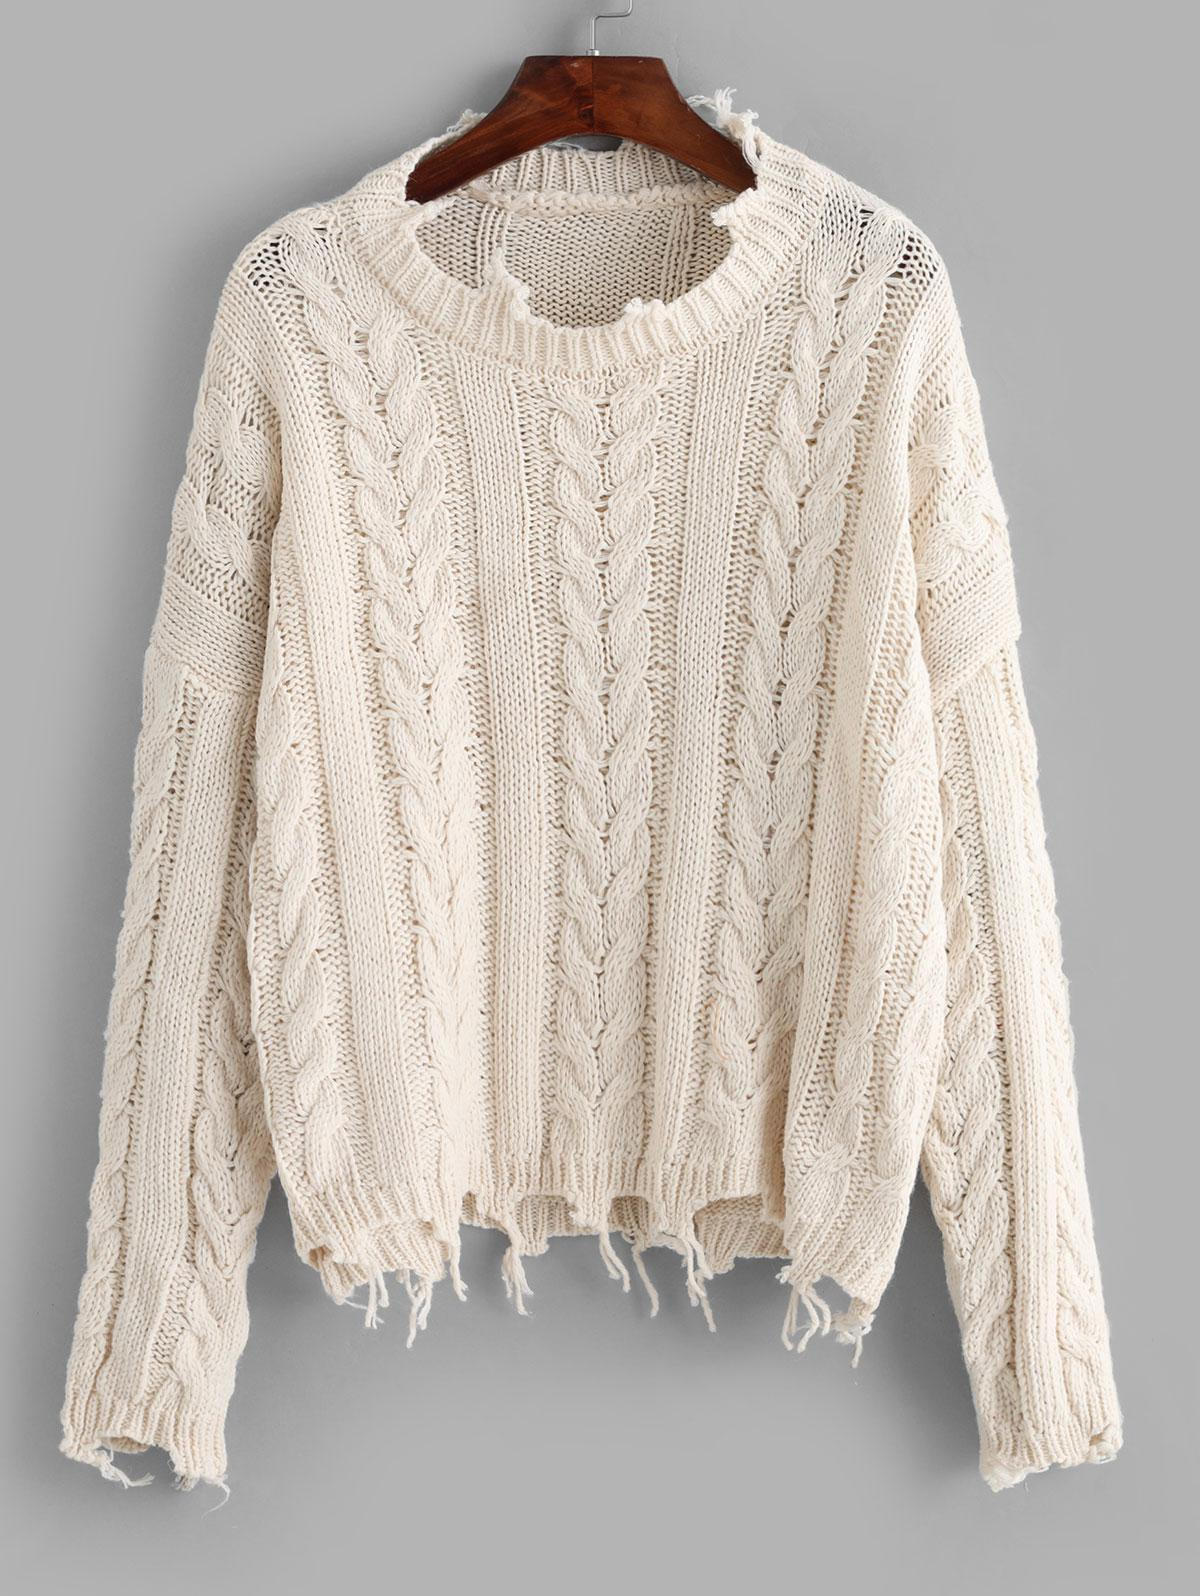 ZAFUL X Luna Montana Ripped Cable Knit Solid Chunky Sweater